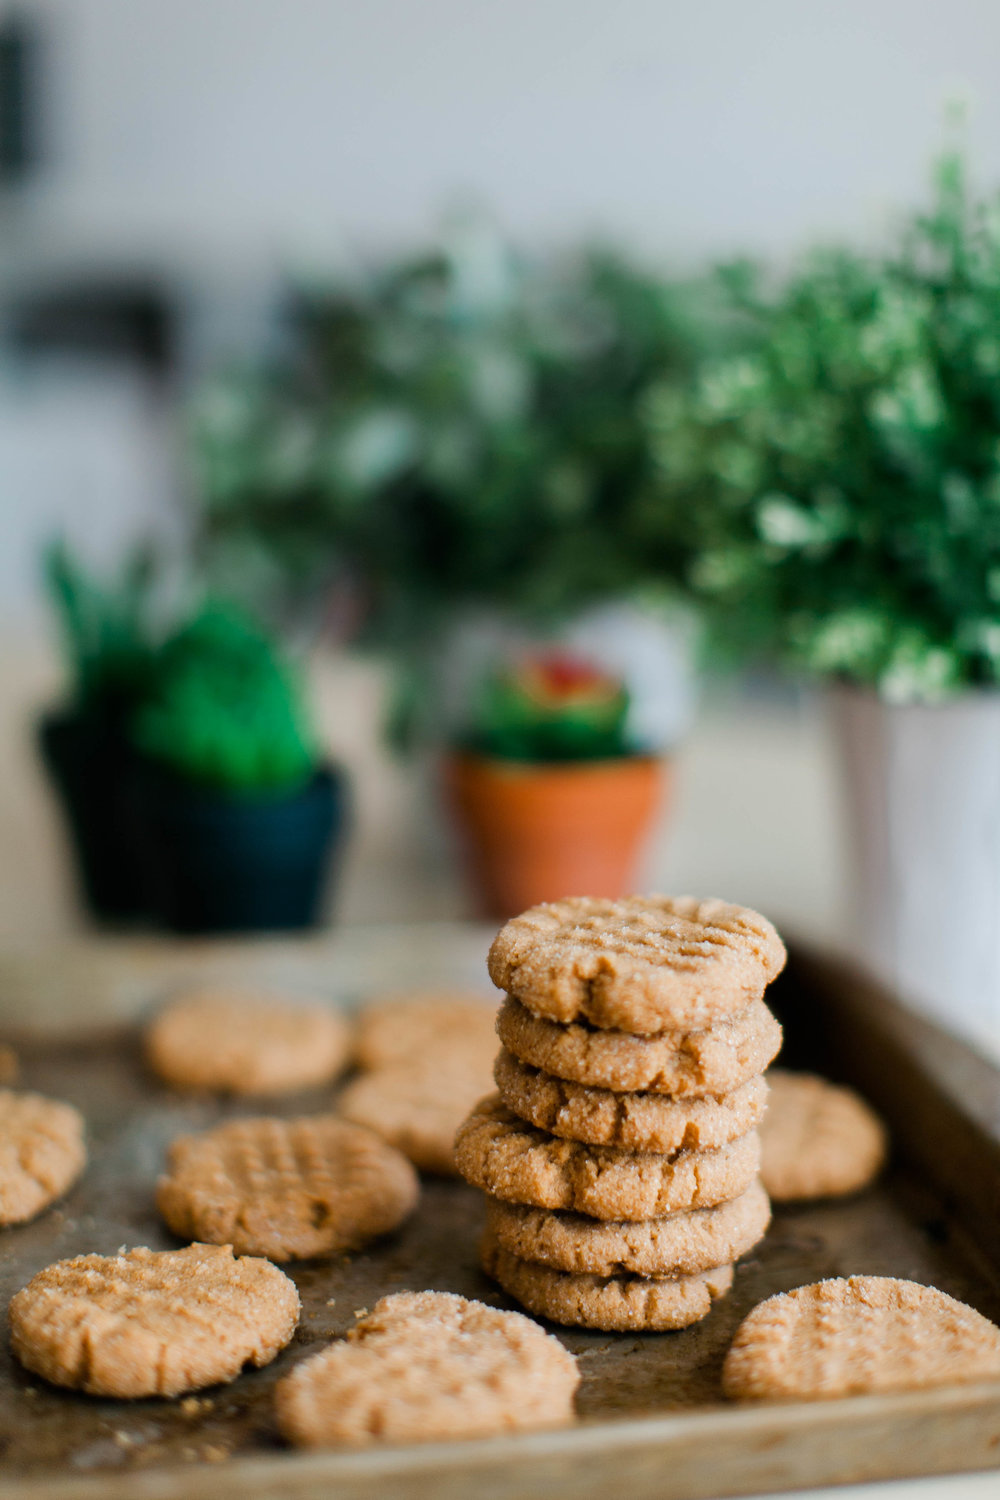 jennahazelphotography-3 ingredient PB Cookies-0058.jpg